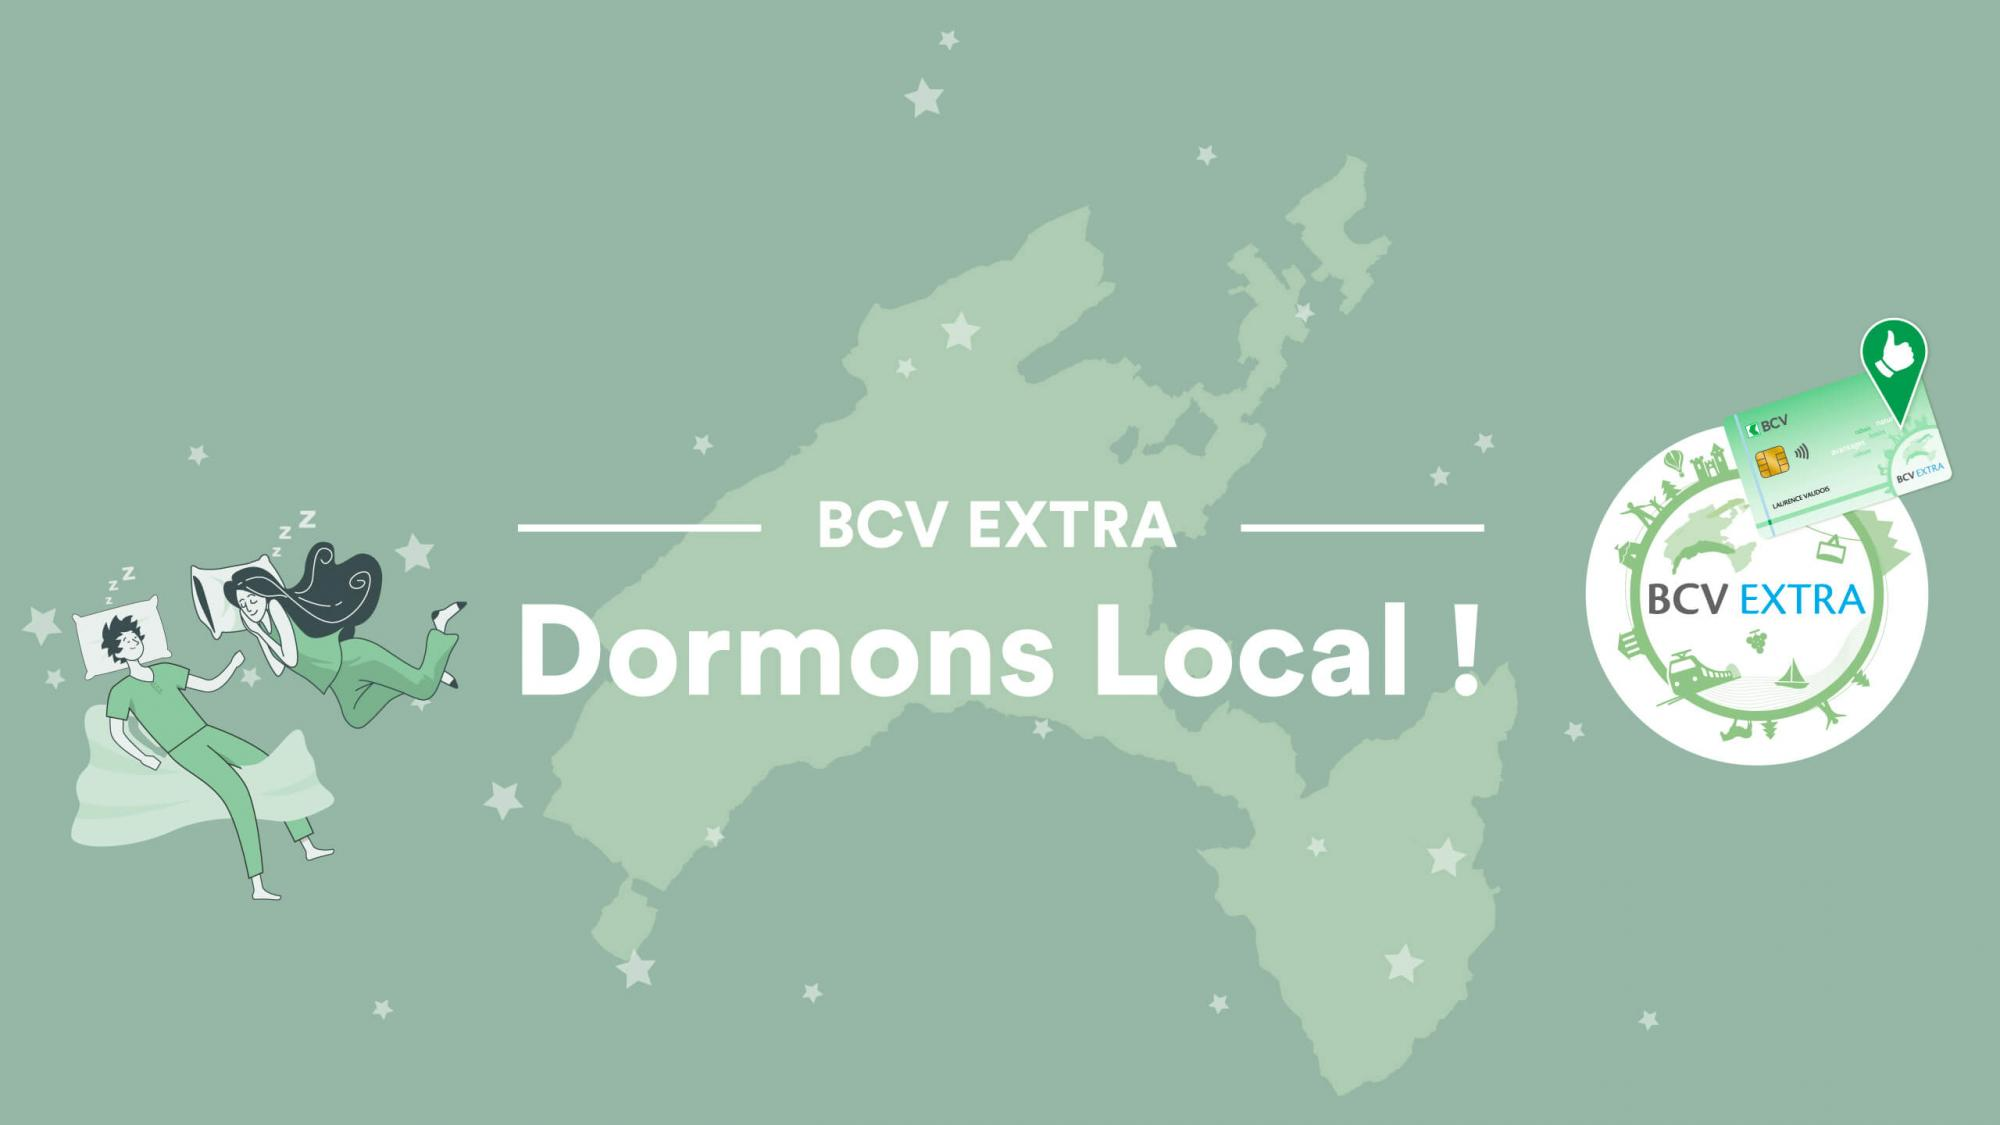 BCV EXTRA - Dormons local !